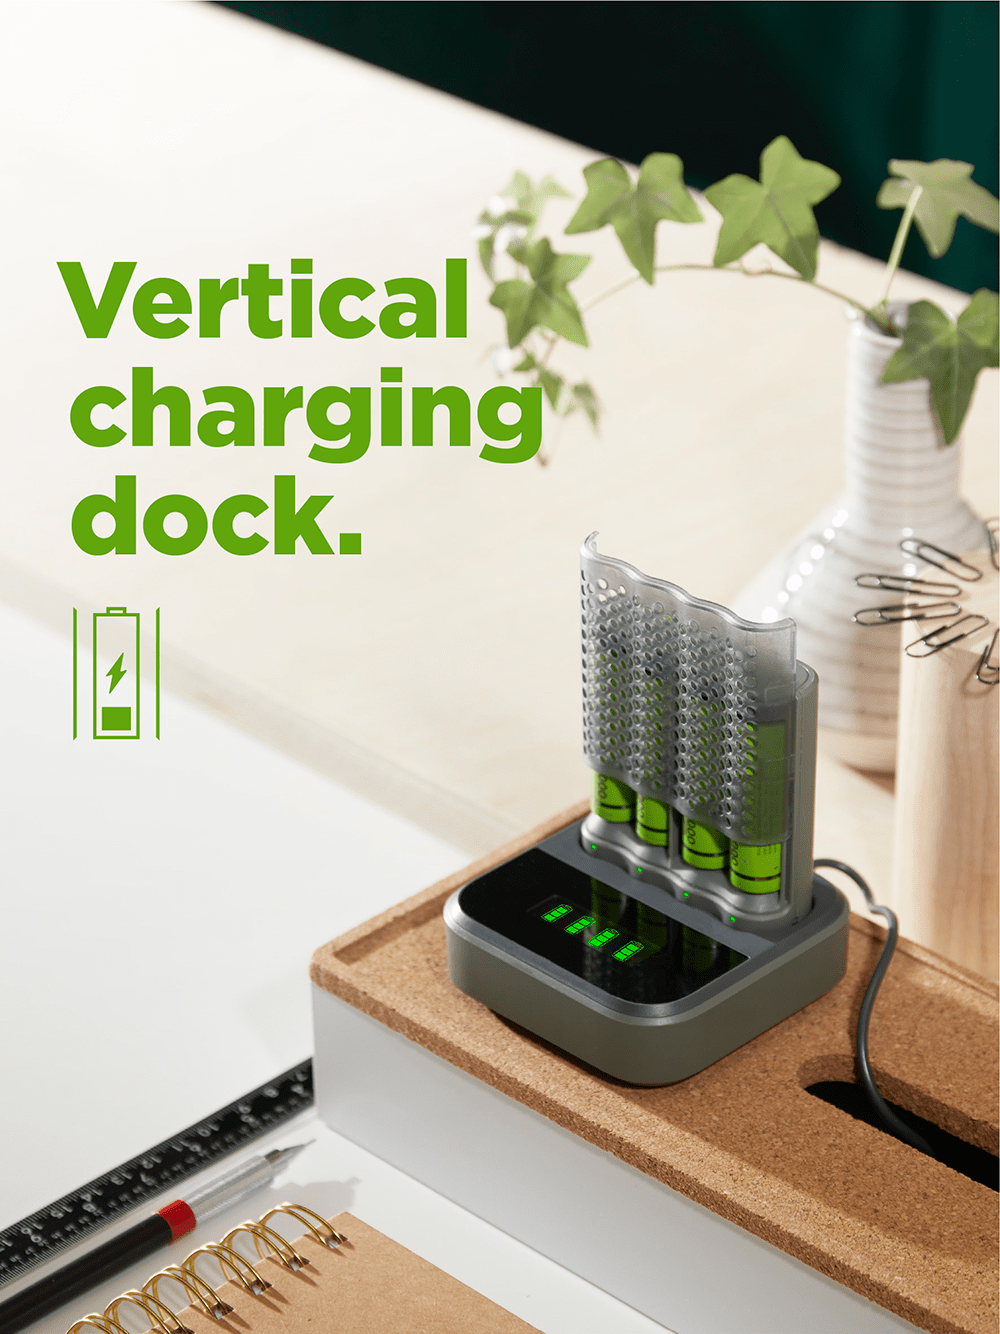 recyko speed charger dock - vertical charging dock